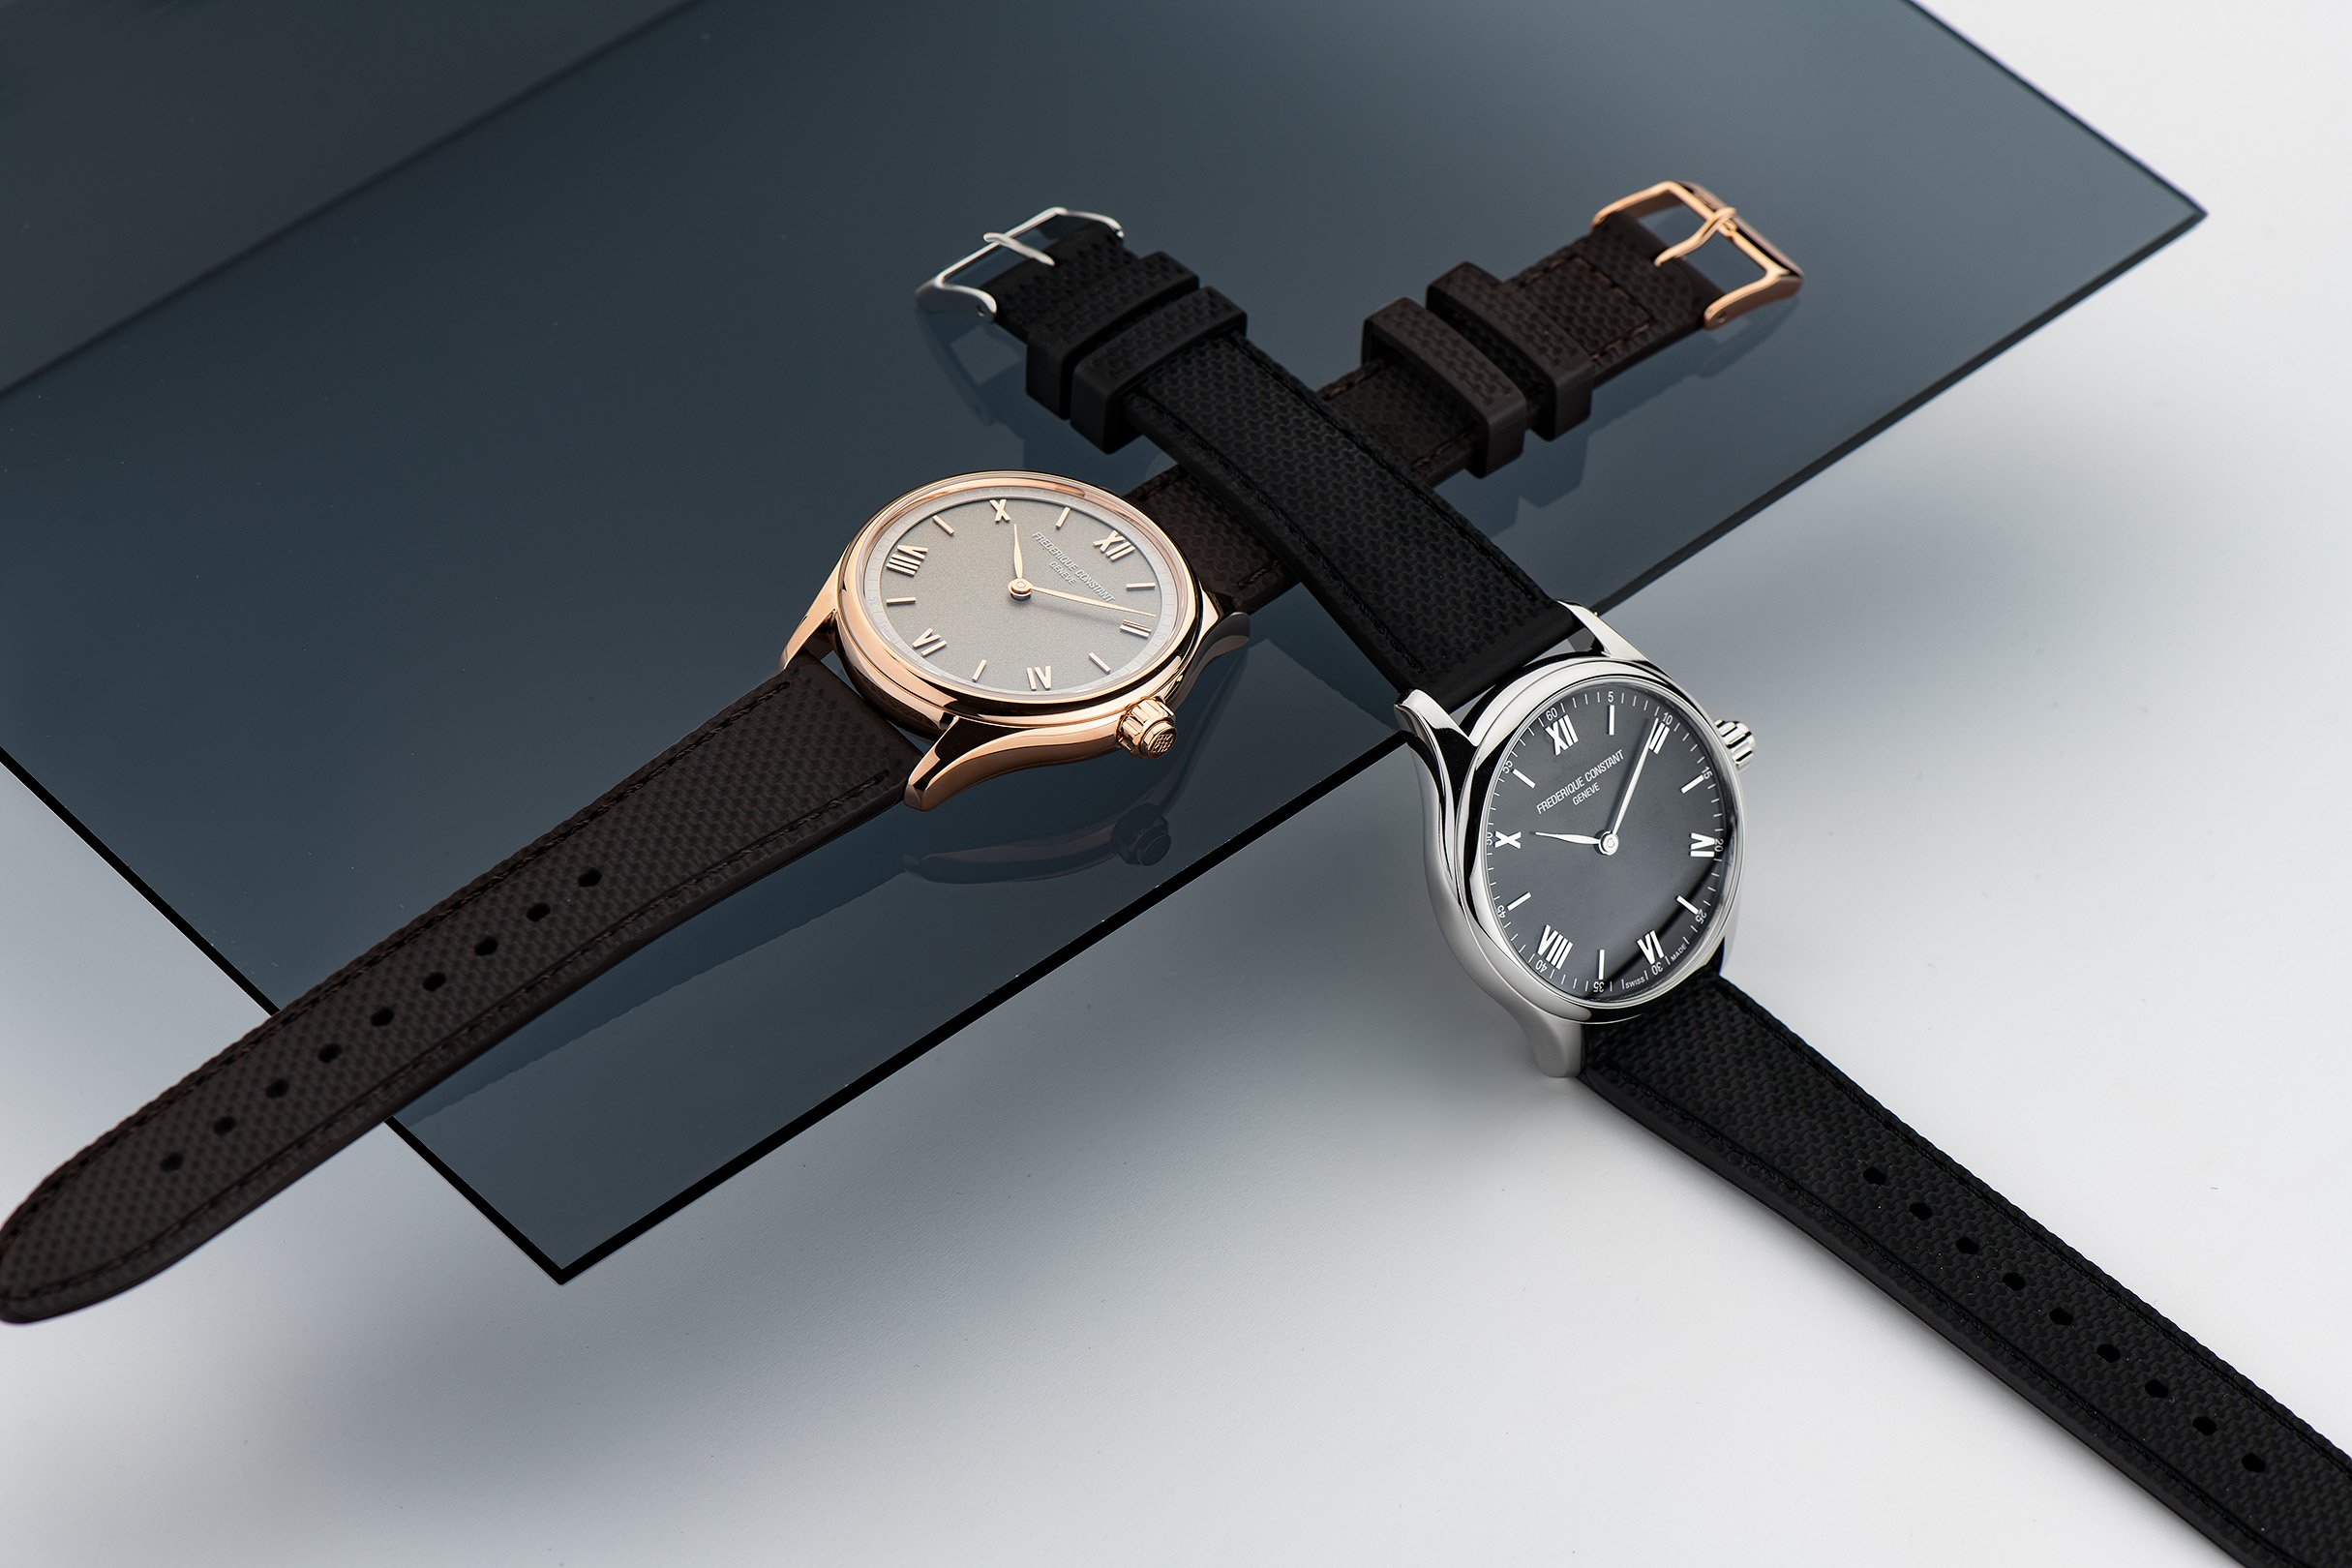 Frederique Constant's Vitality Watches